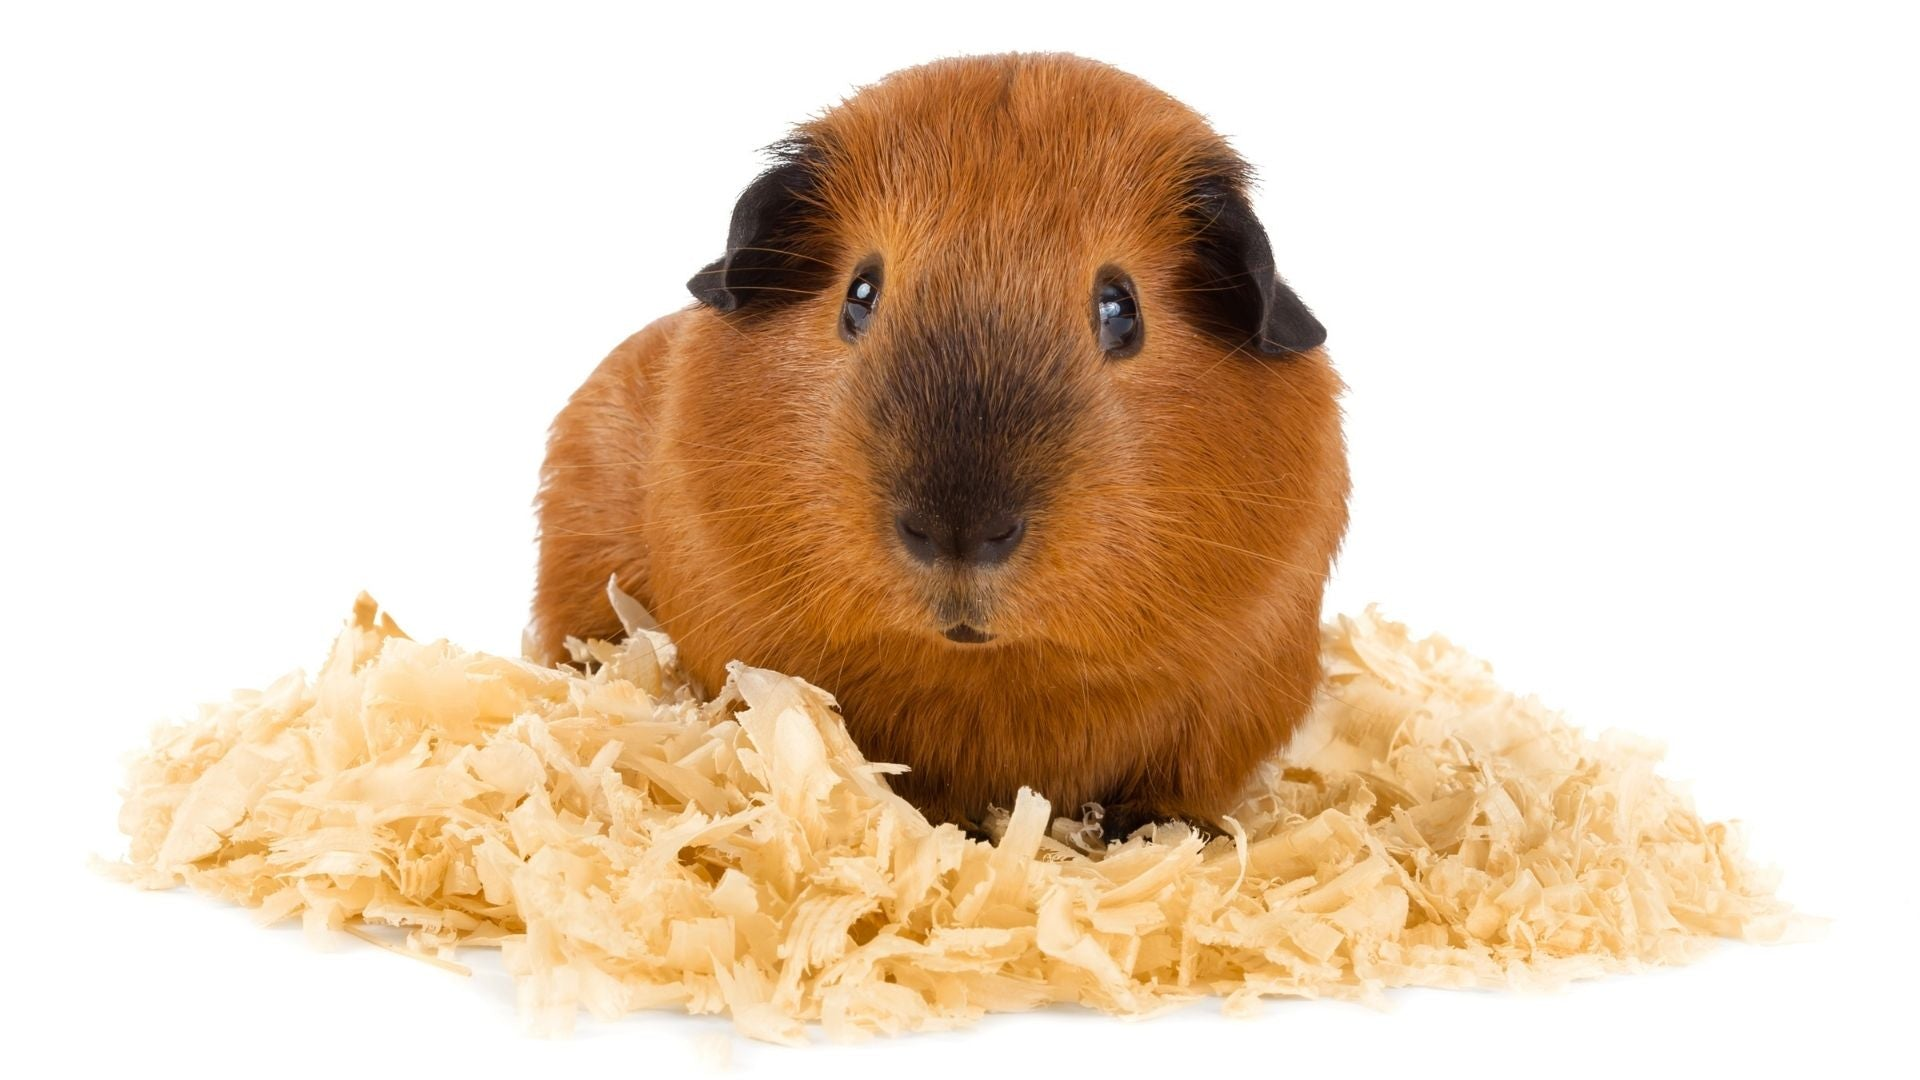 ginger guinea pig with black ears and face sat on wood shavings on white background allergies